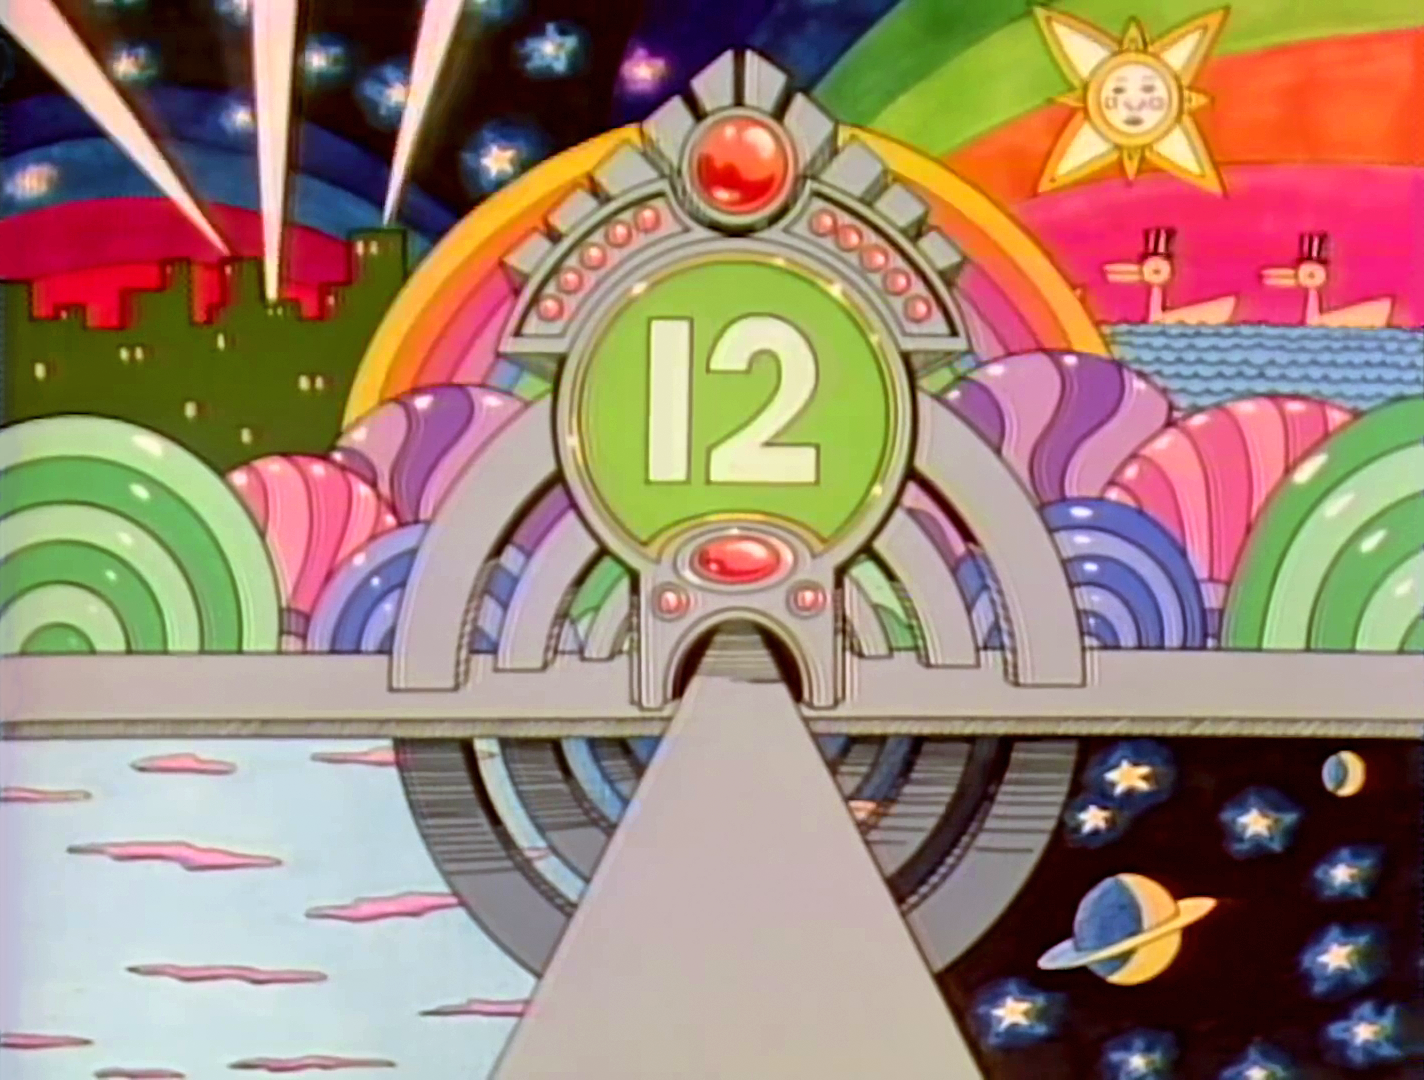 Pinball Number Count | Muppet Wiki | FANDOM powered by Wikia